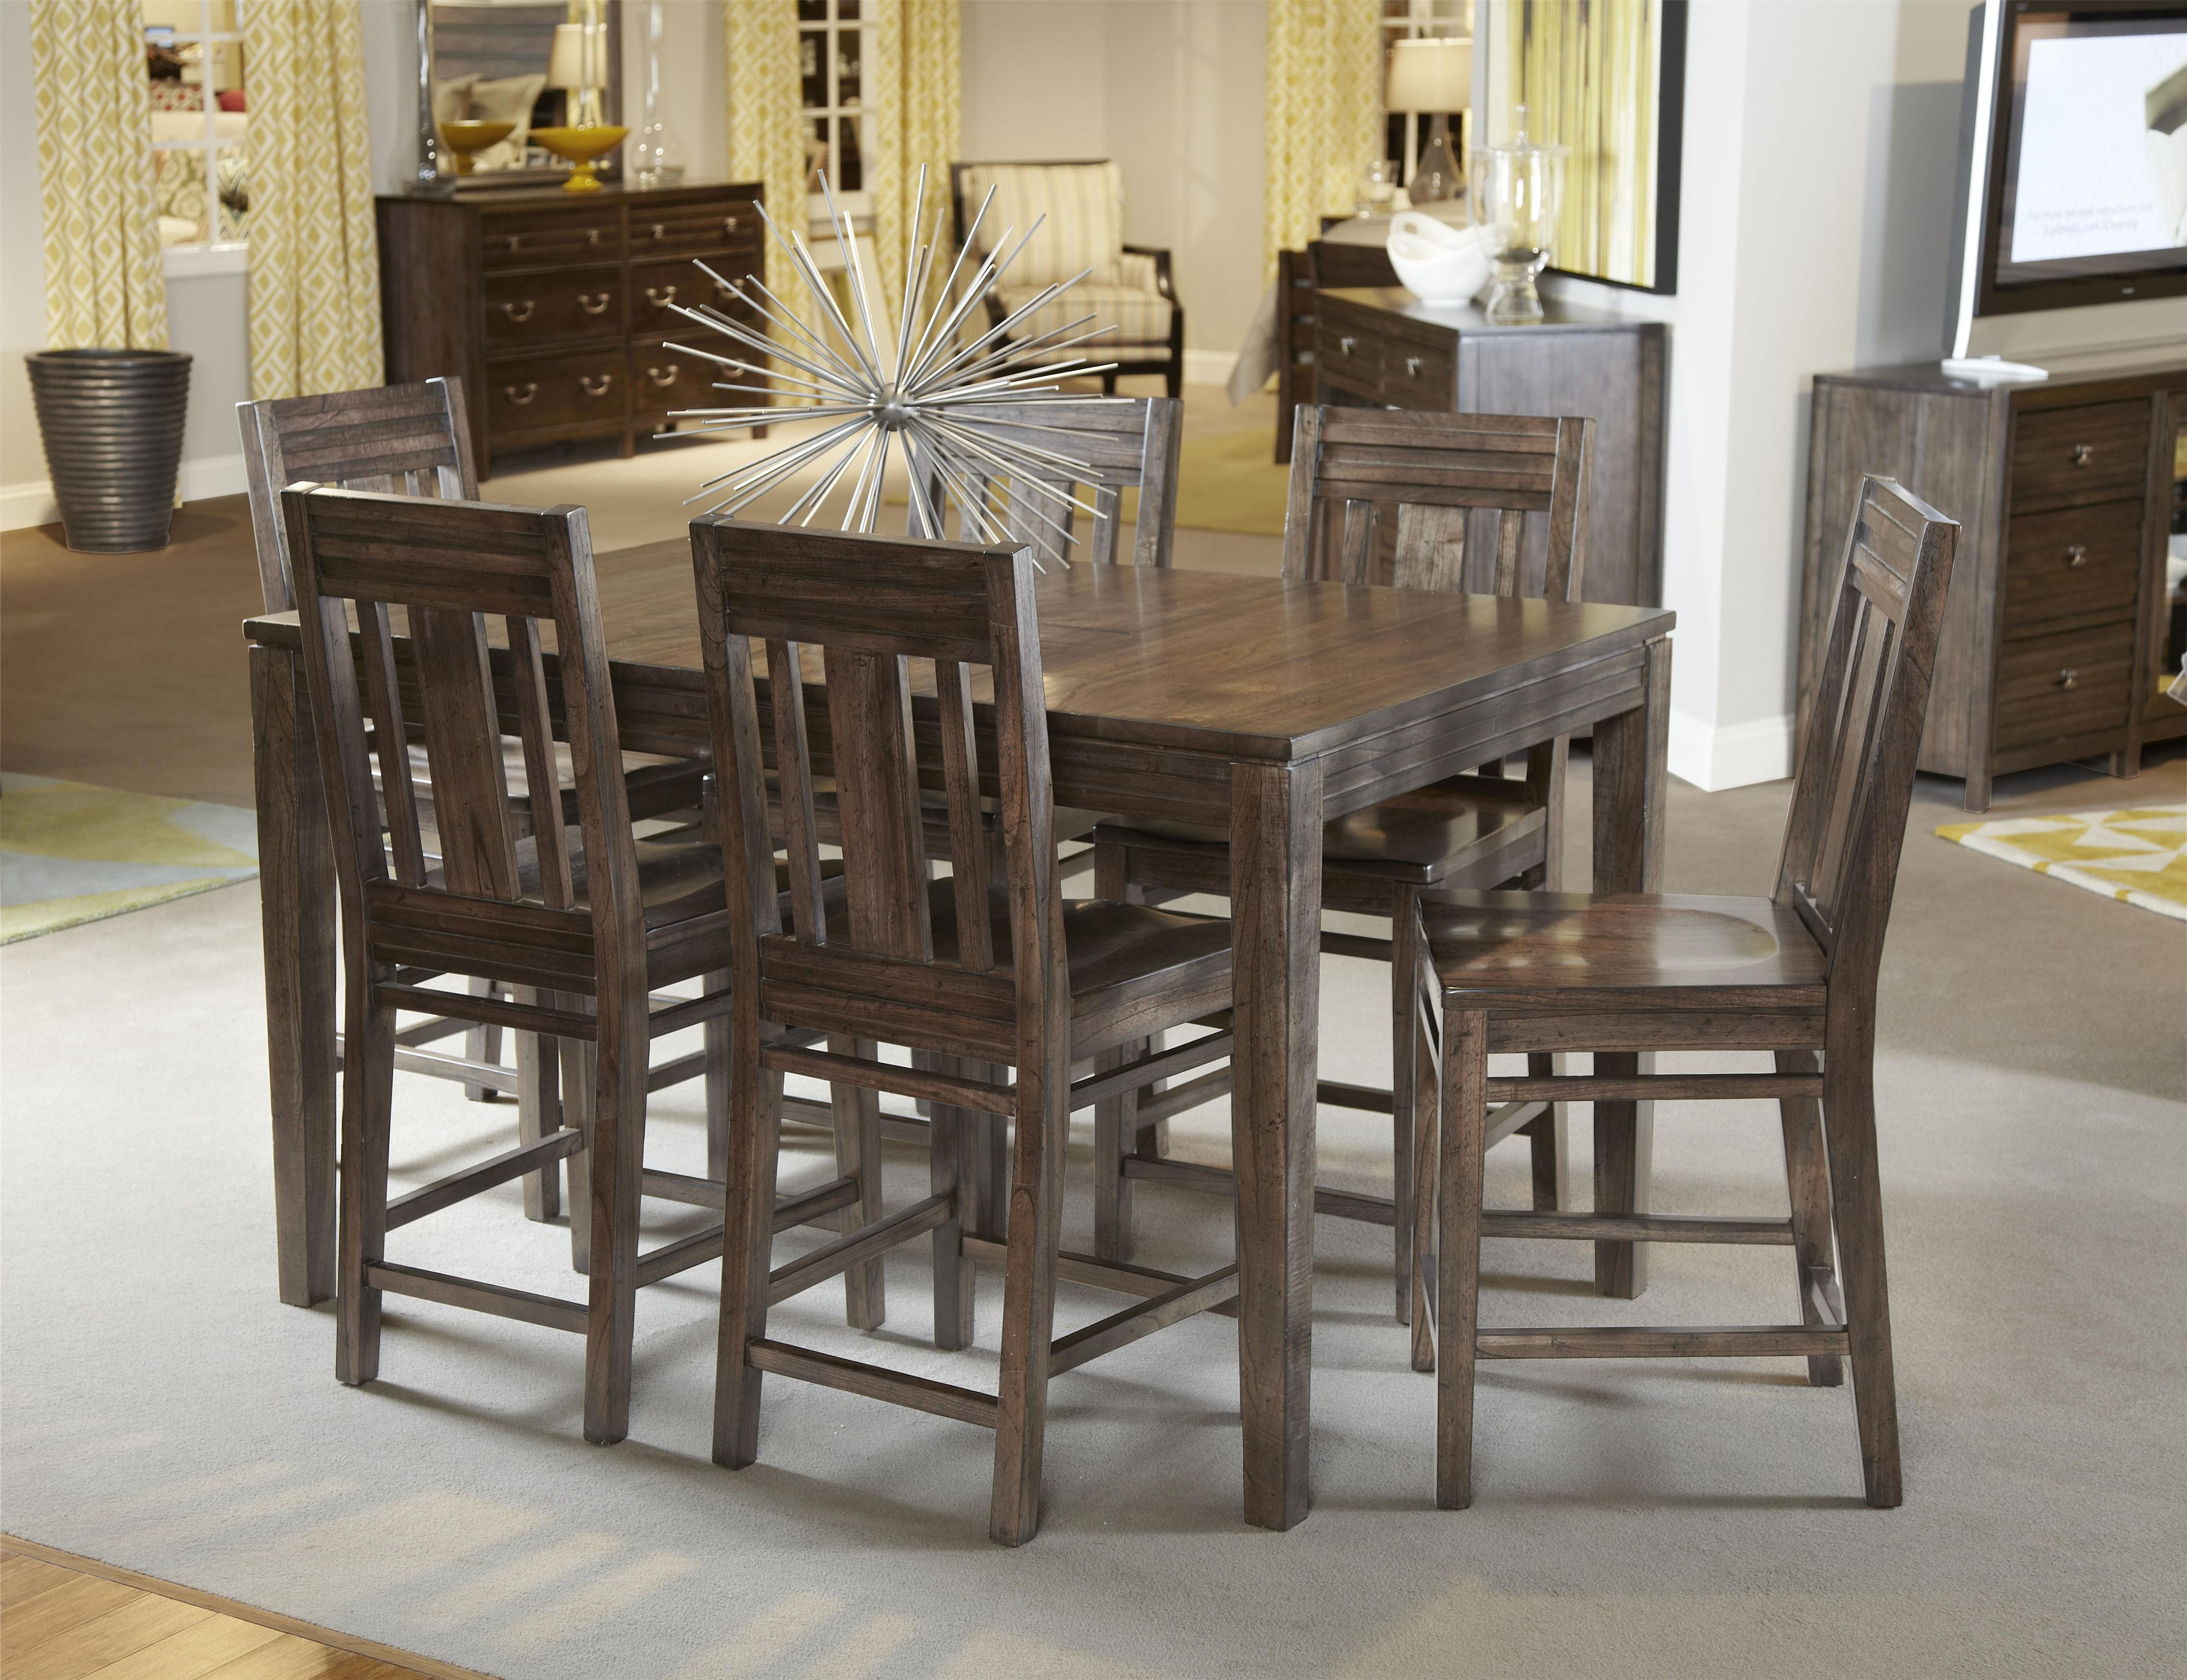 7 Pc Casual Counter Height Dining Set